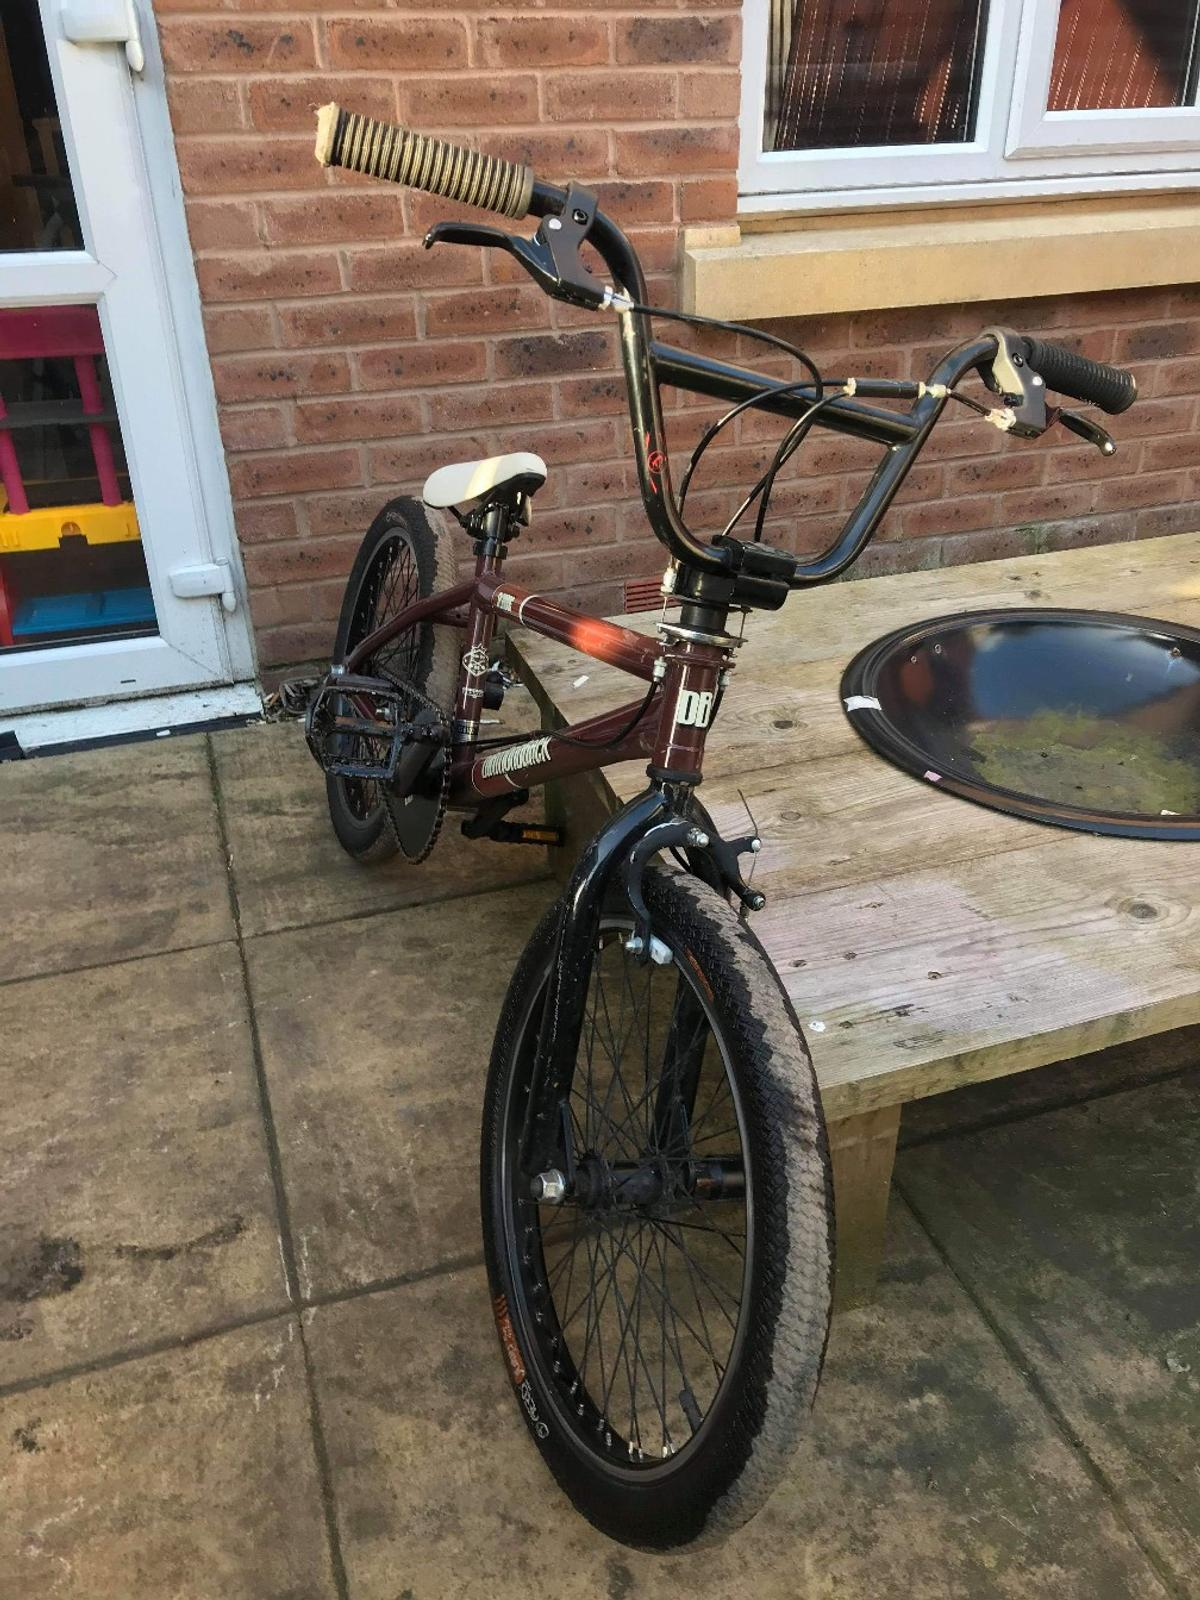 For sale or swopzs . diamondback bmx bike All working 20 inch wheels Good tyers . couple of marks on the forks the frame like new open to offers or swopzs pick up only